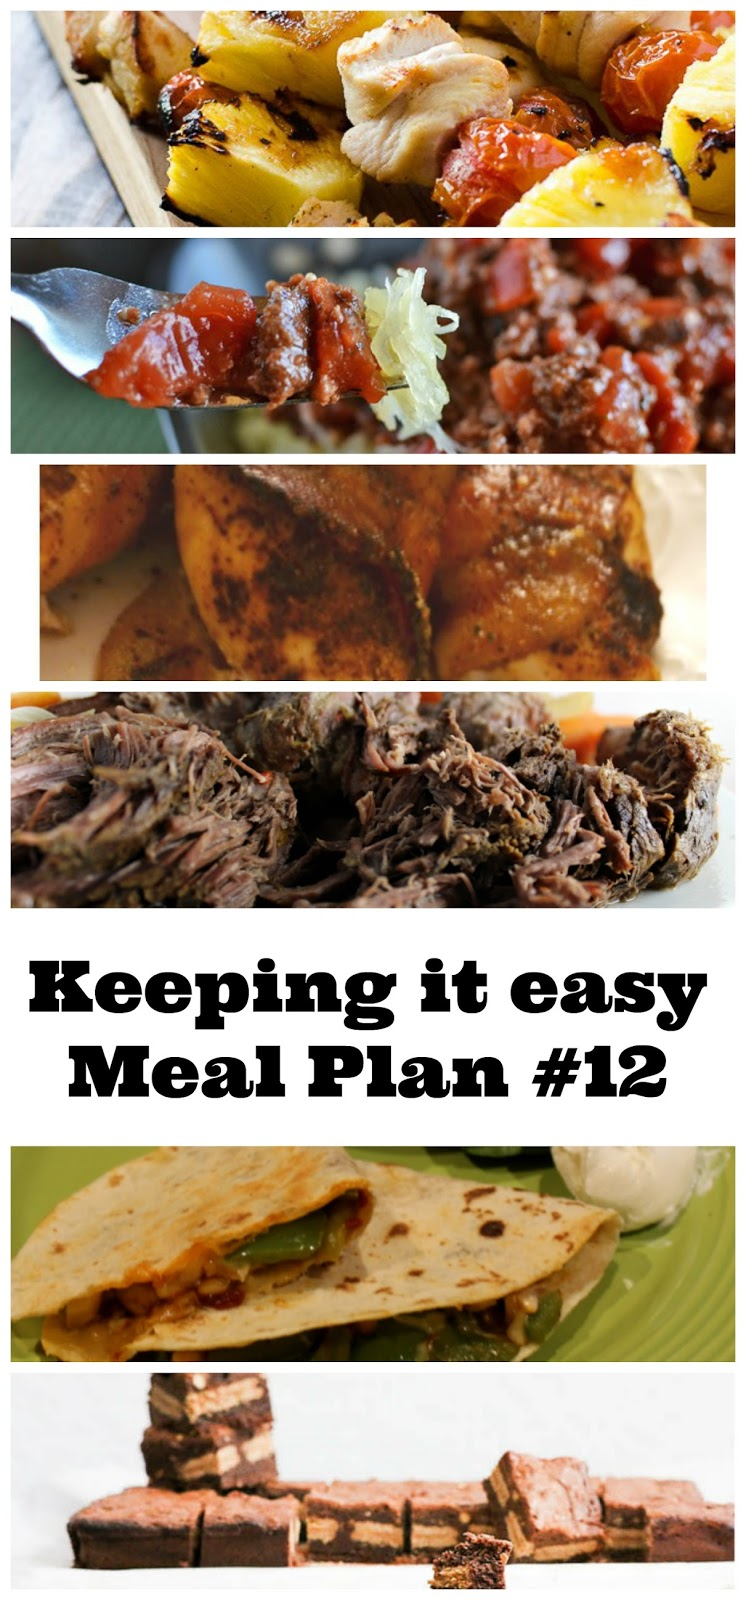 Keeping it Easy Meal Plan #12 from My Fearless Kitchen. This week's meal plan includes Cascade Scramble, Pina Colada Chicken Skewers, Spaghetti Squash with Meat Sauce, Sweet & Spicy Bacon-Wrapped Chicken, Best Slow Cooker Beef Roast, Vegetable Chipotle Quesadillas, and A'Nutter Butter Brownies.